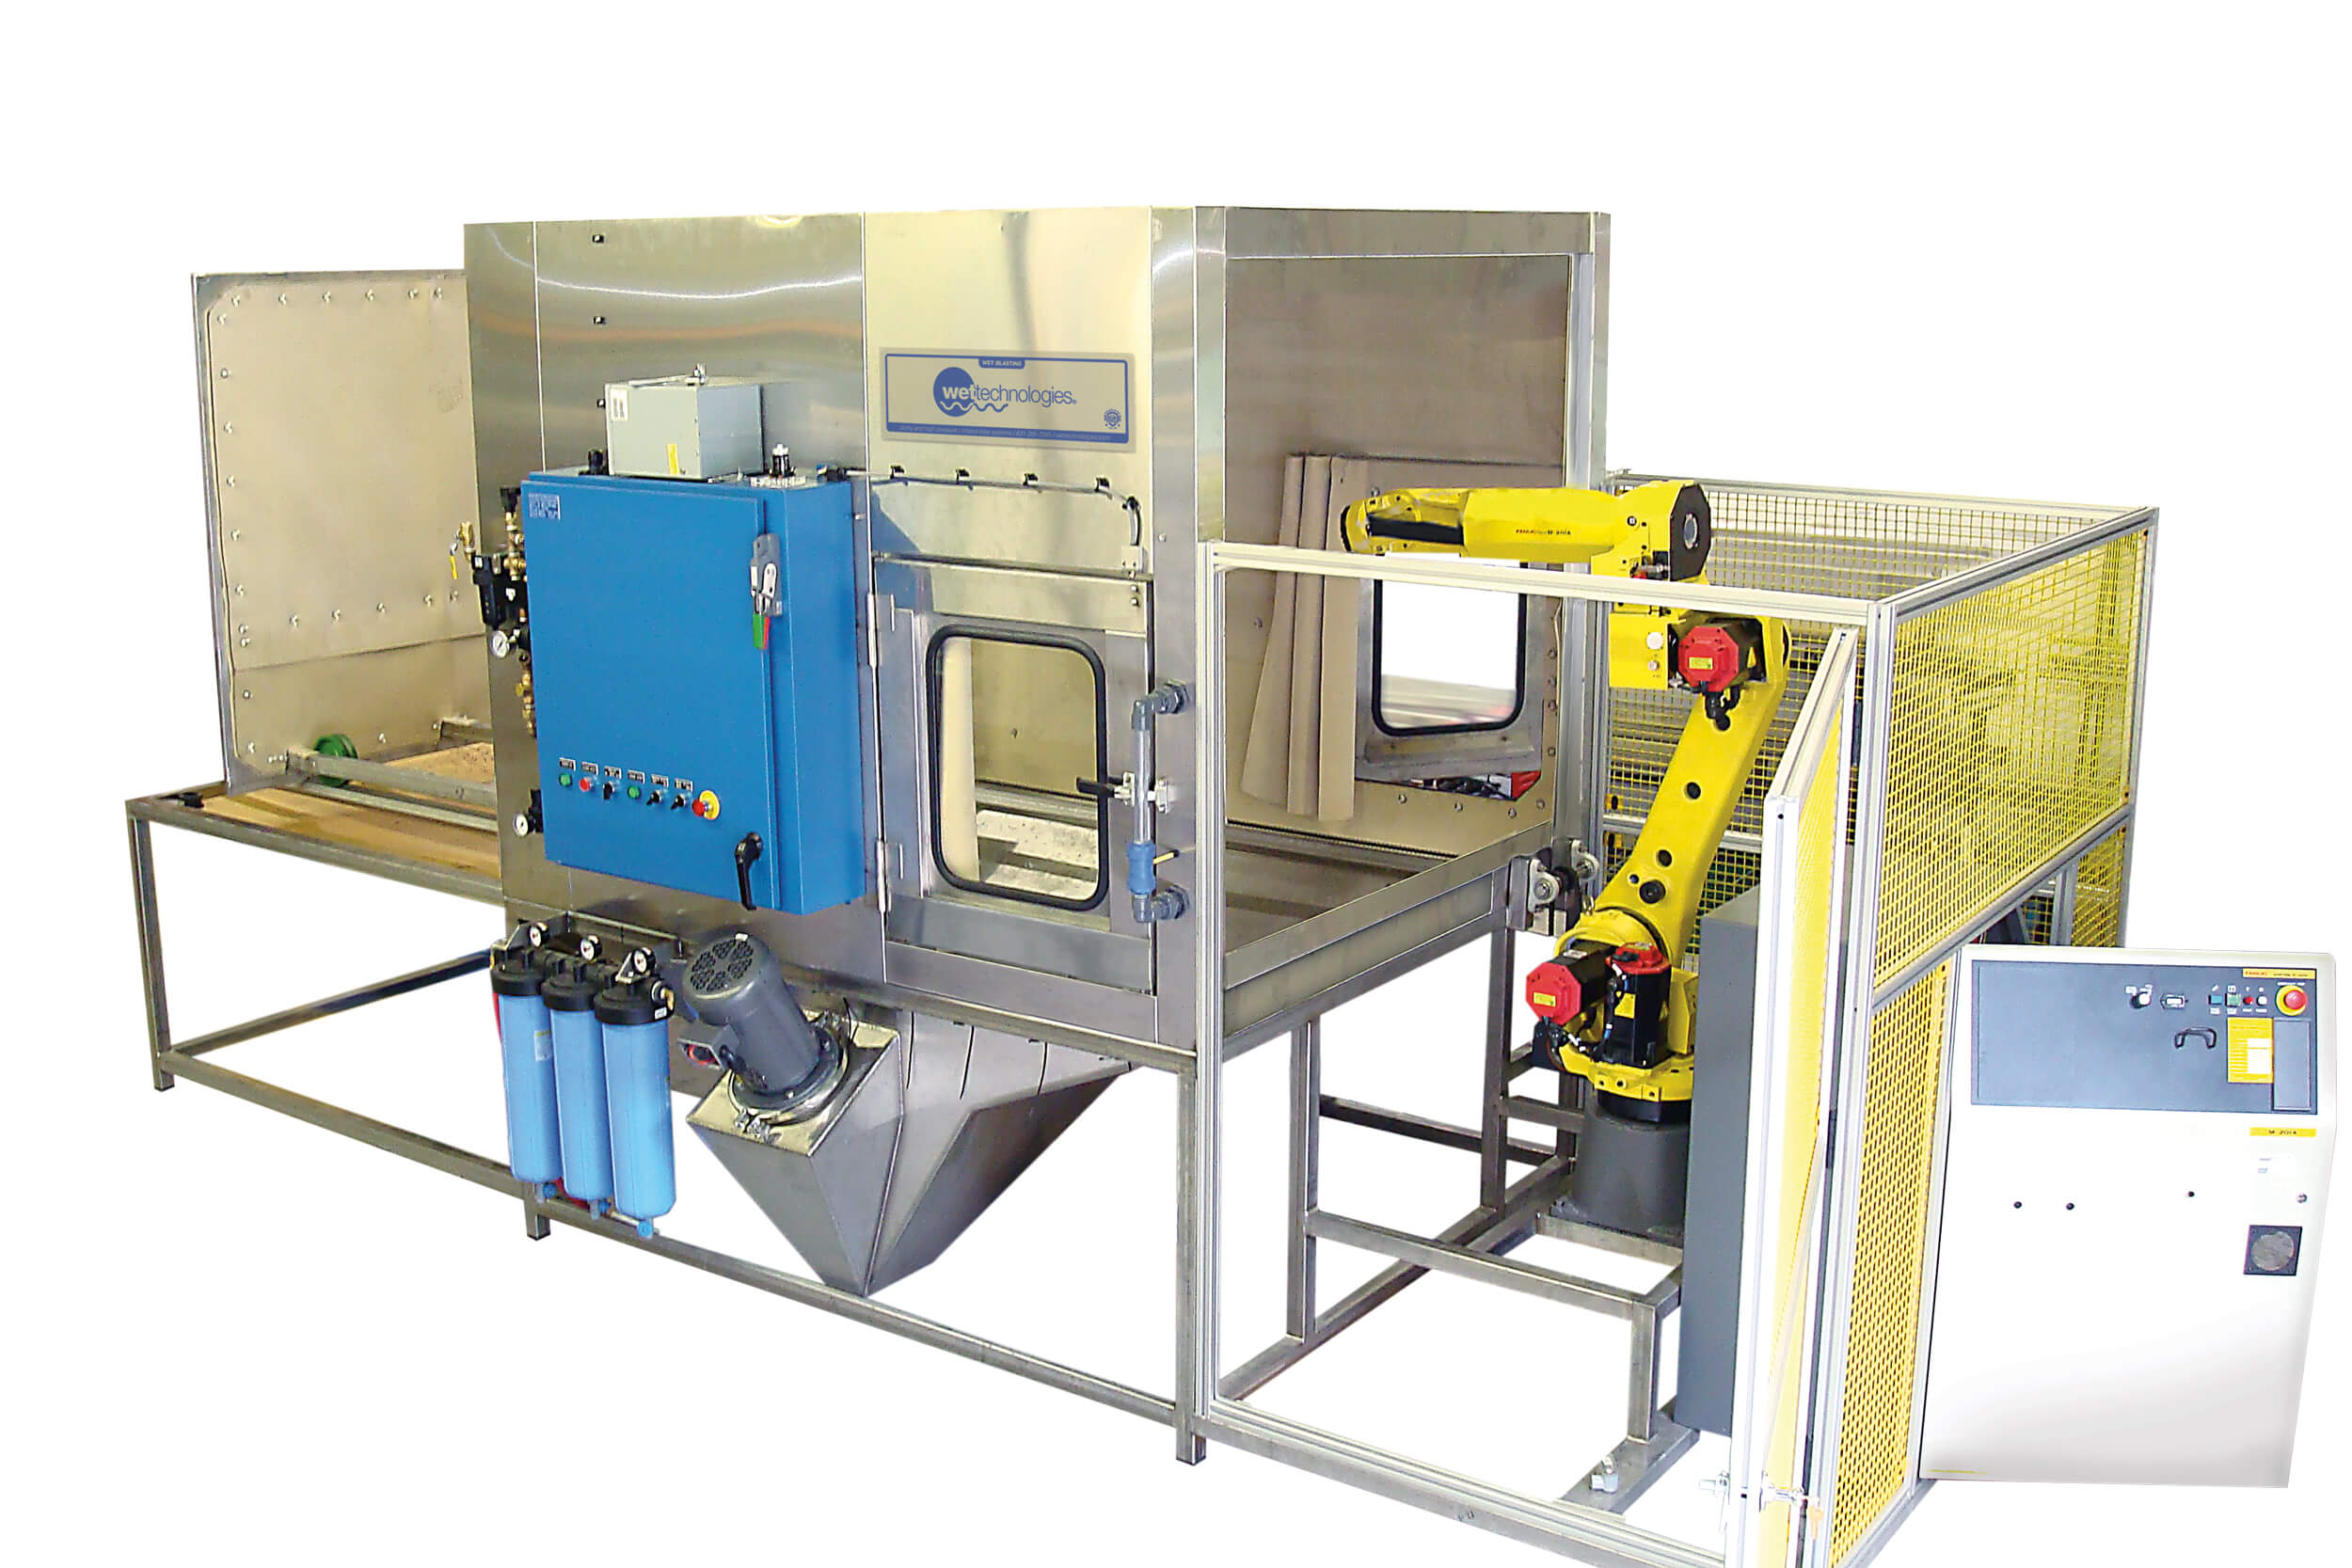 Robotic Wet Blast System with opposing windows to monitor process